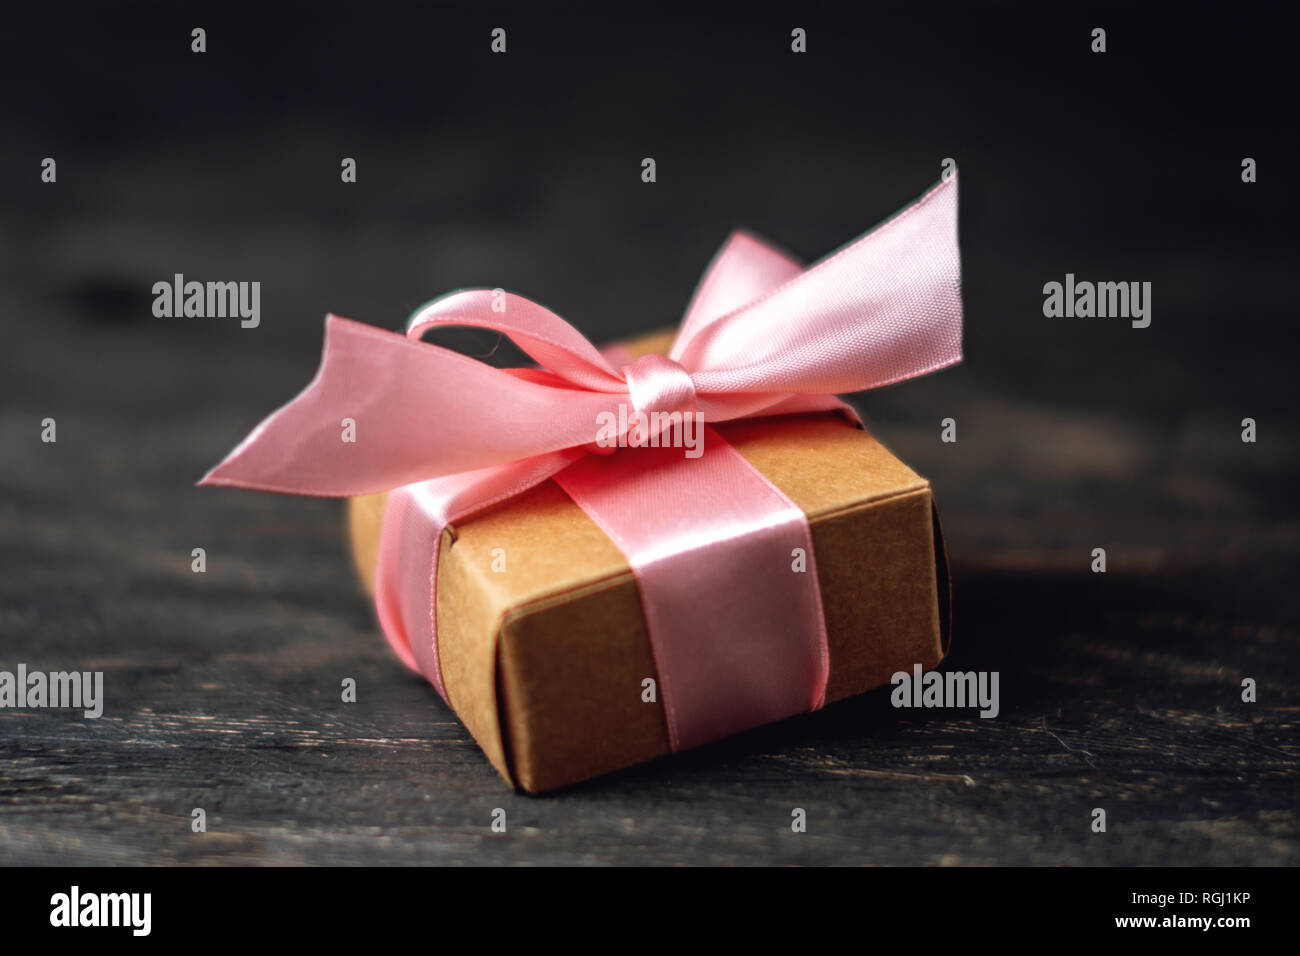 Holiday gift box Packed in crafting paper and red polka dots on dark wooden background. The concept of beautiful cards with gifts - Stock Image